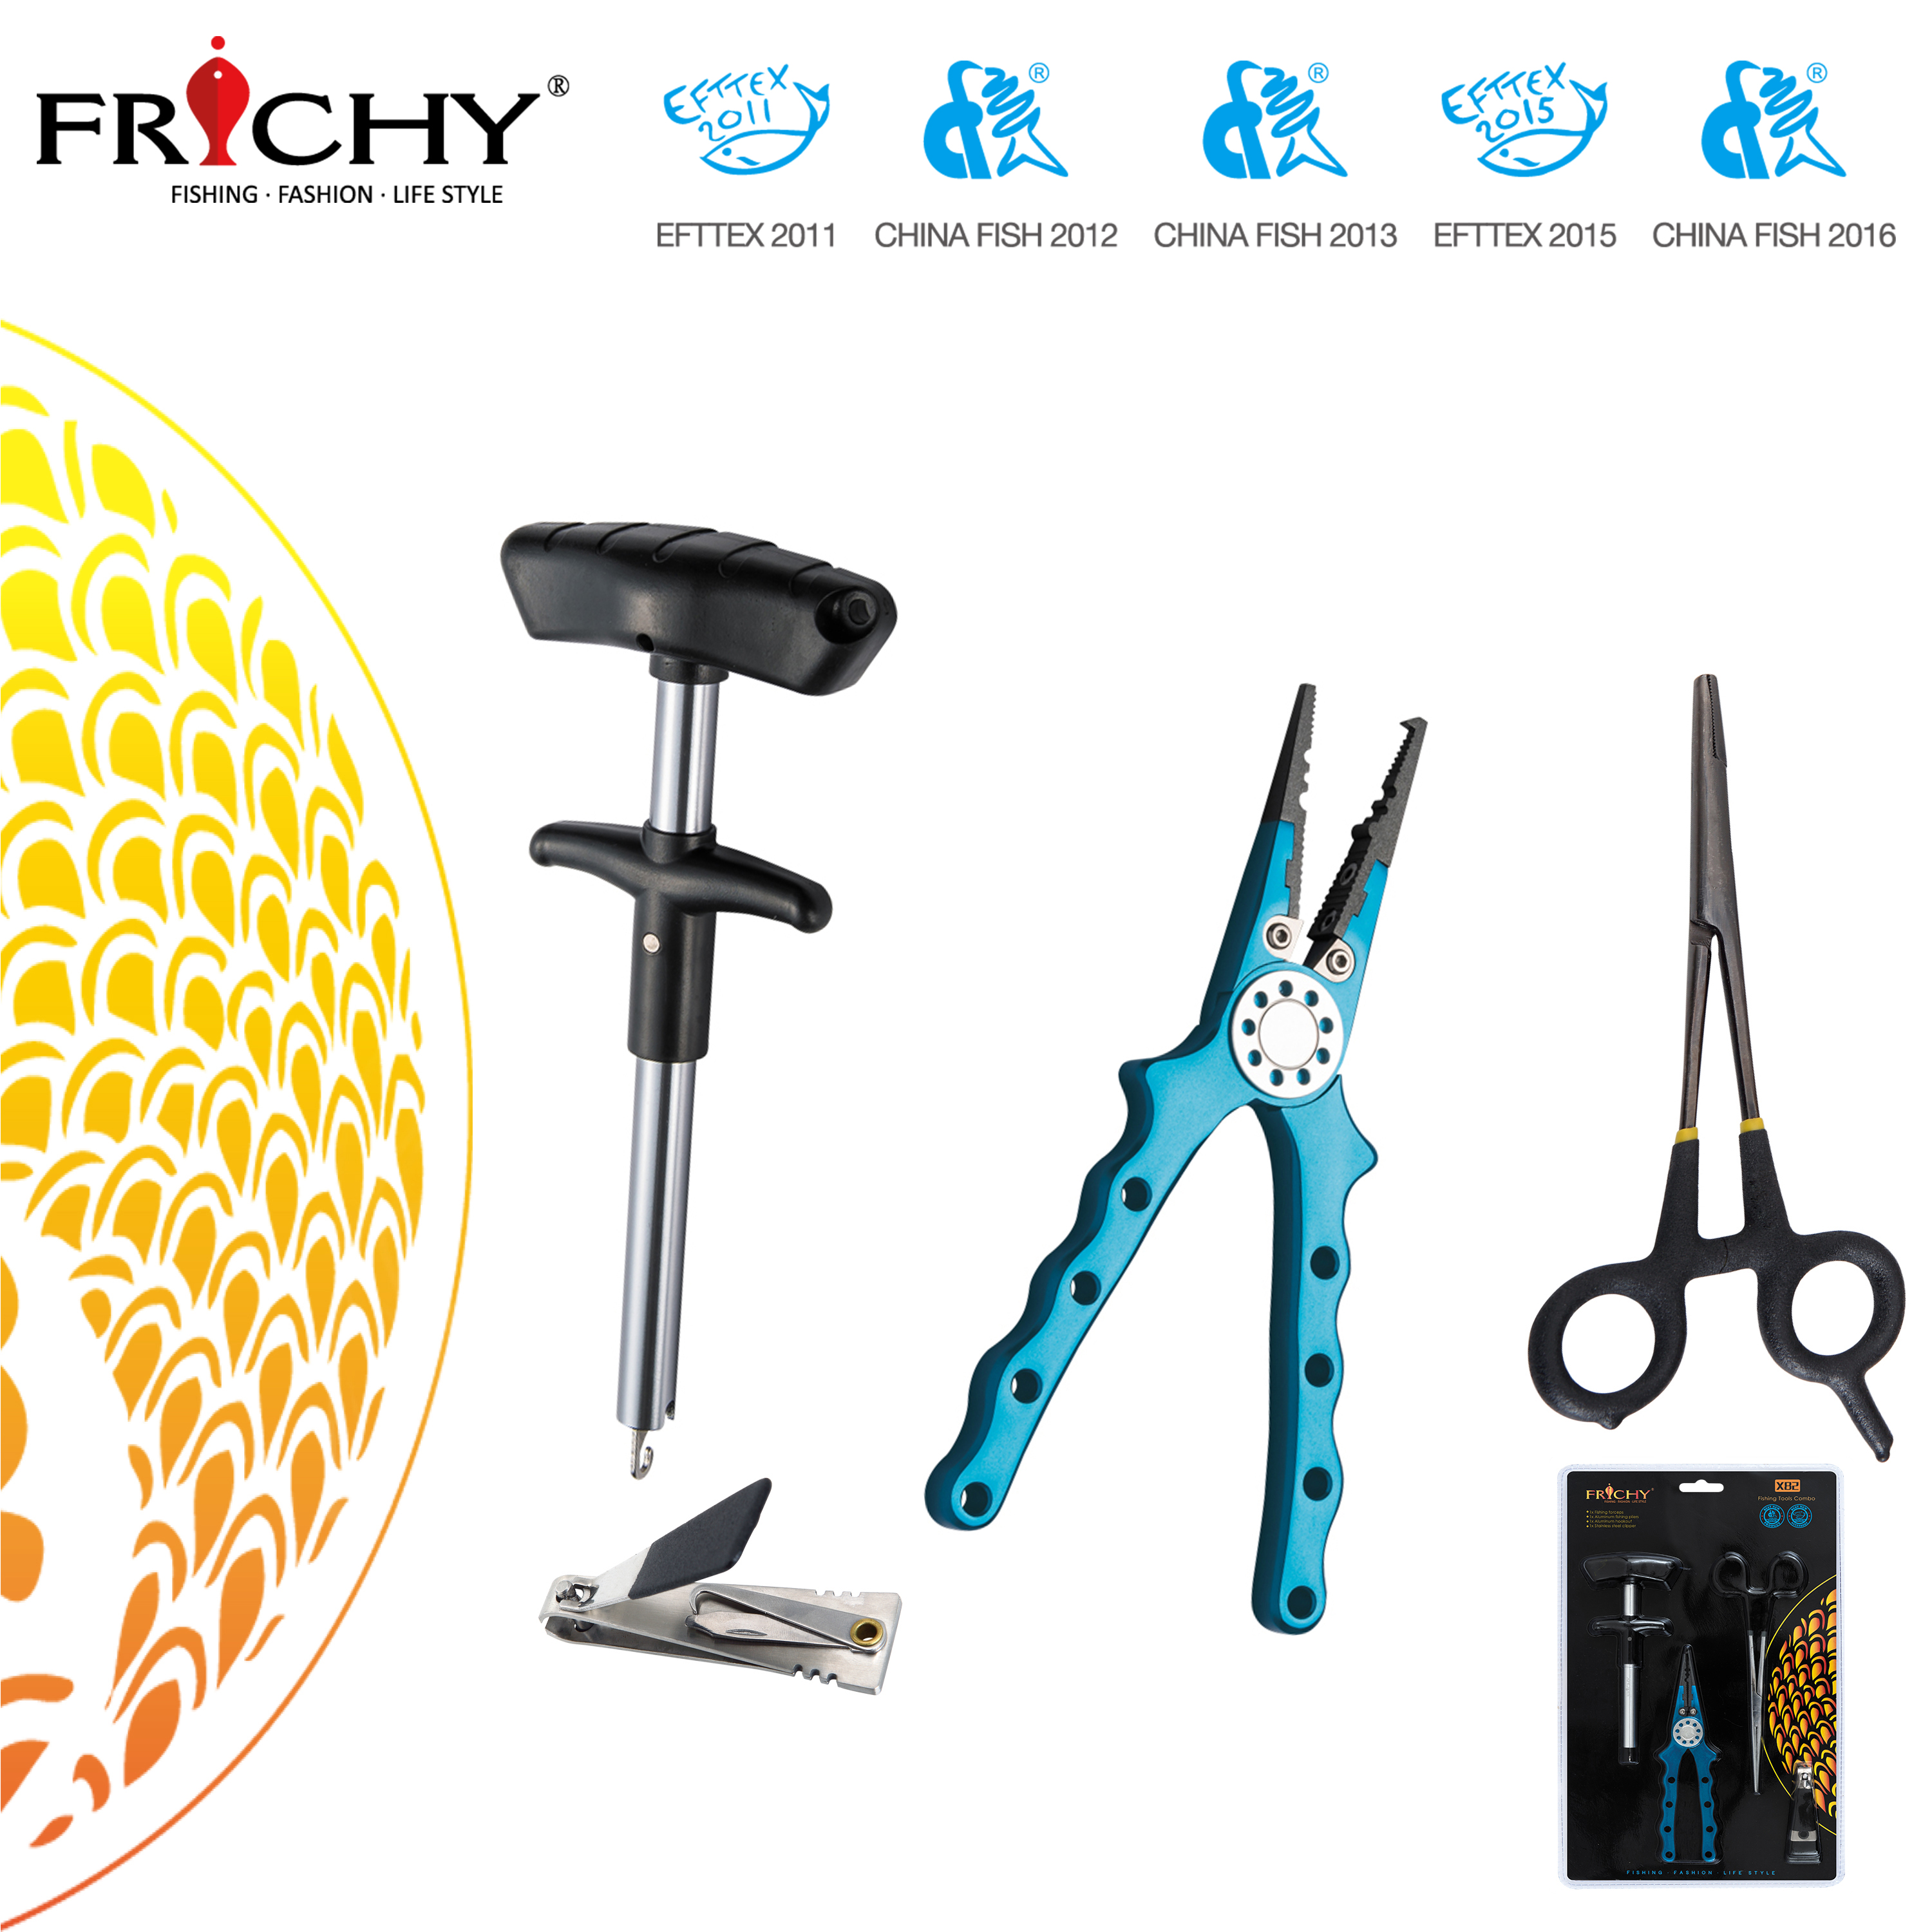 X82 Quality Fishing Tools Combo - Fishing Forceps, Pliers and Hook Remover and Stainless Steel Clipper